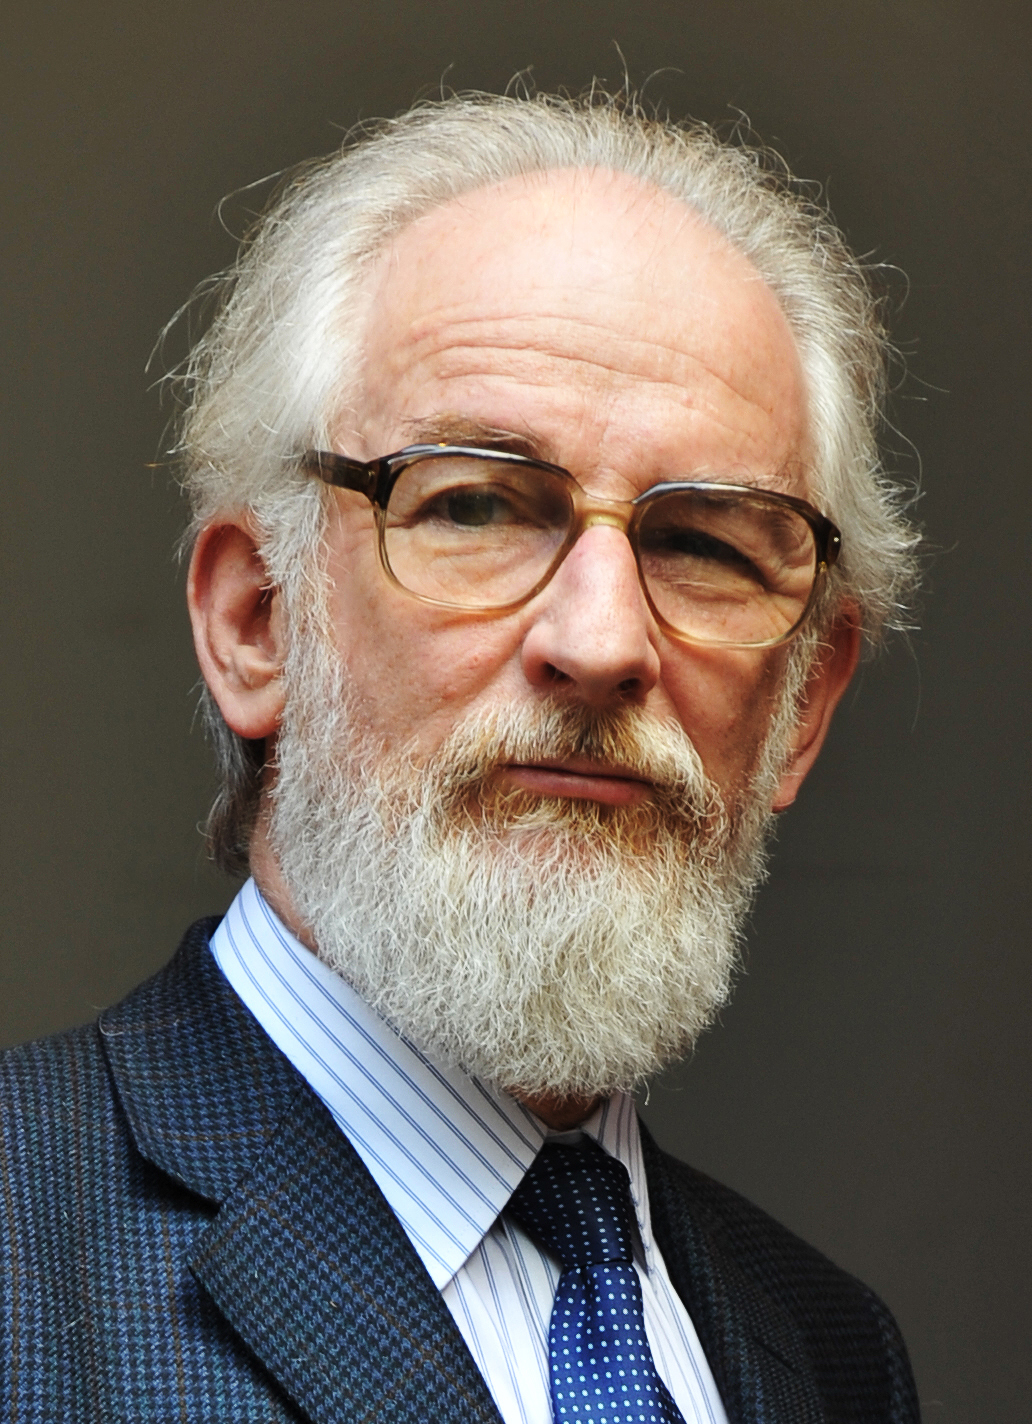 david crystal to deliver keynote at the next admonsters